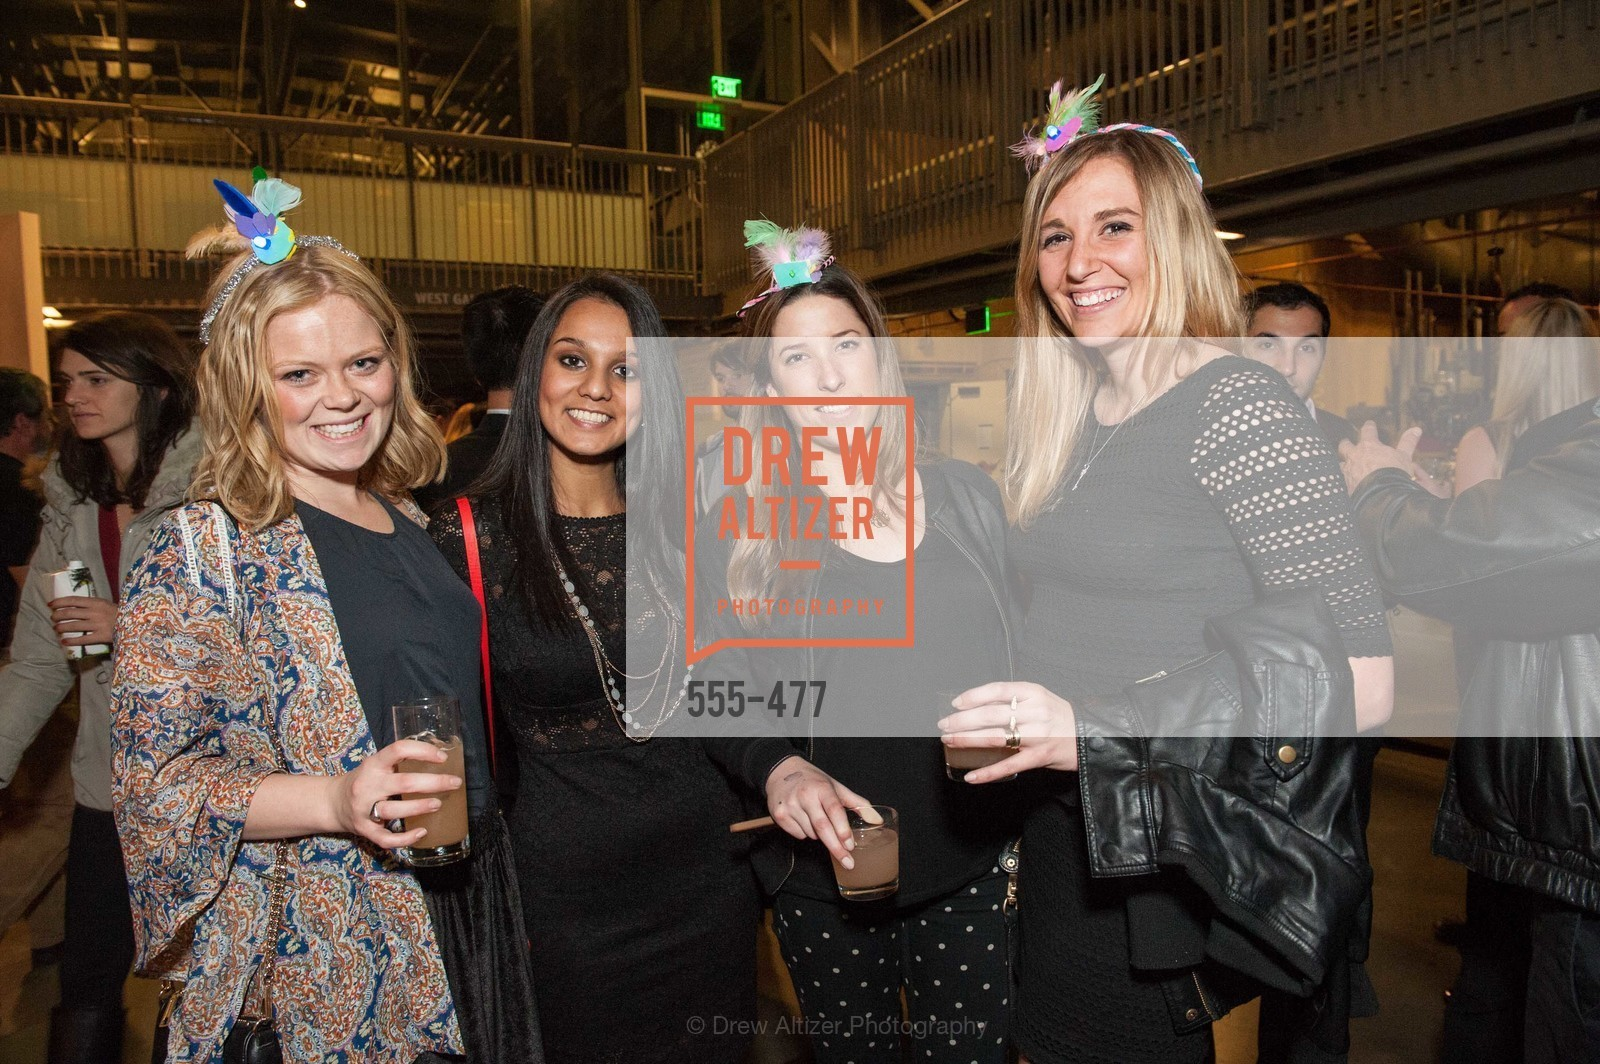 Sarah Rudolph, Sabina Khanna, Julienne Gamboa, Sophie Fieck, THE EXPLORATORIUM LAB Presents 2014 Science of Cocktails, US. US, January 24th, 2014,Drew Altizer, Drew Altizer Photography, full-service agency, private events, San Francisco photographer, photographer california